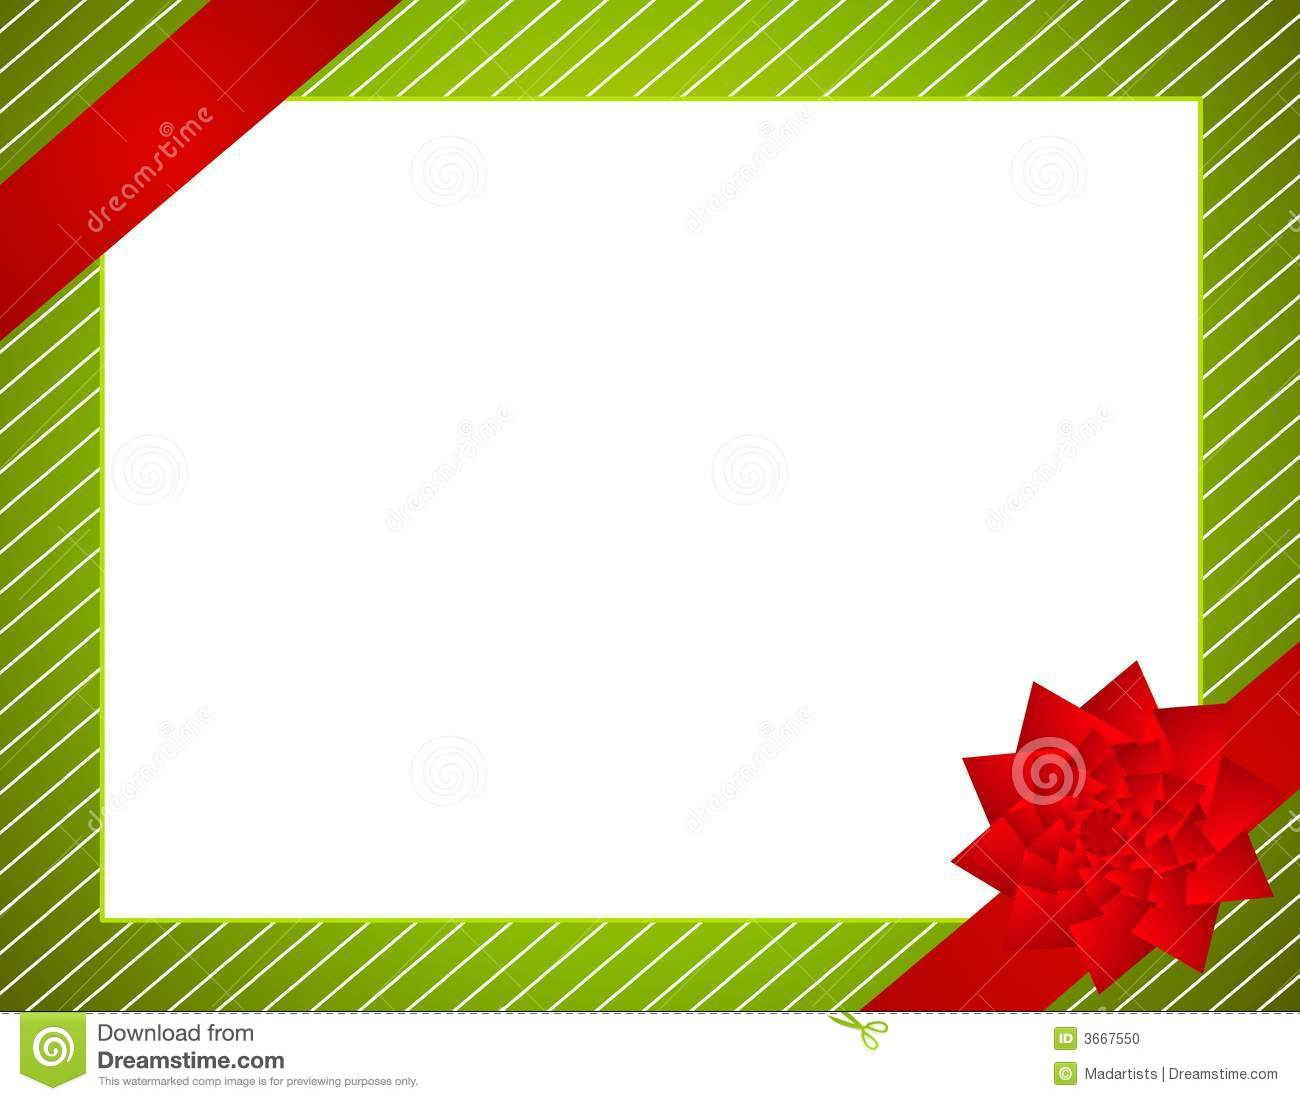 Christmas Wrap And Bow Border Stock Photo - Image: 3667550